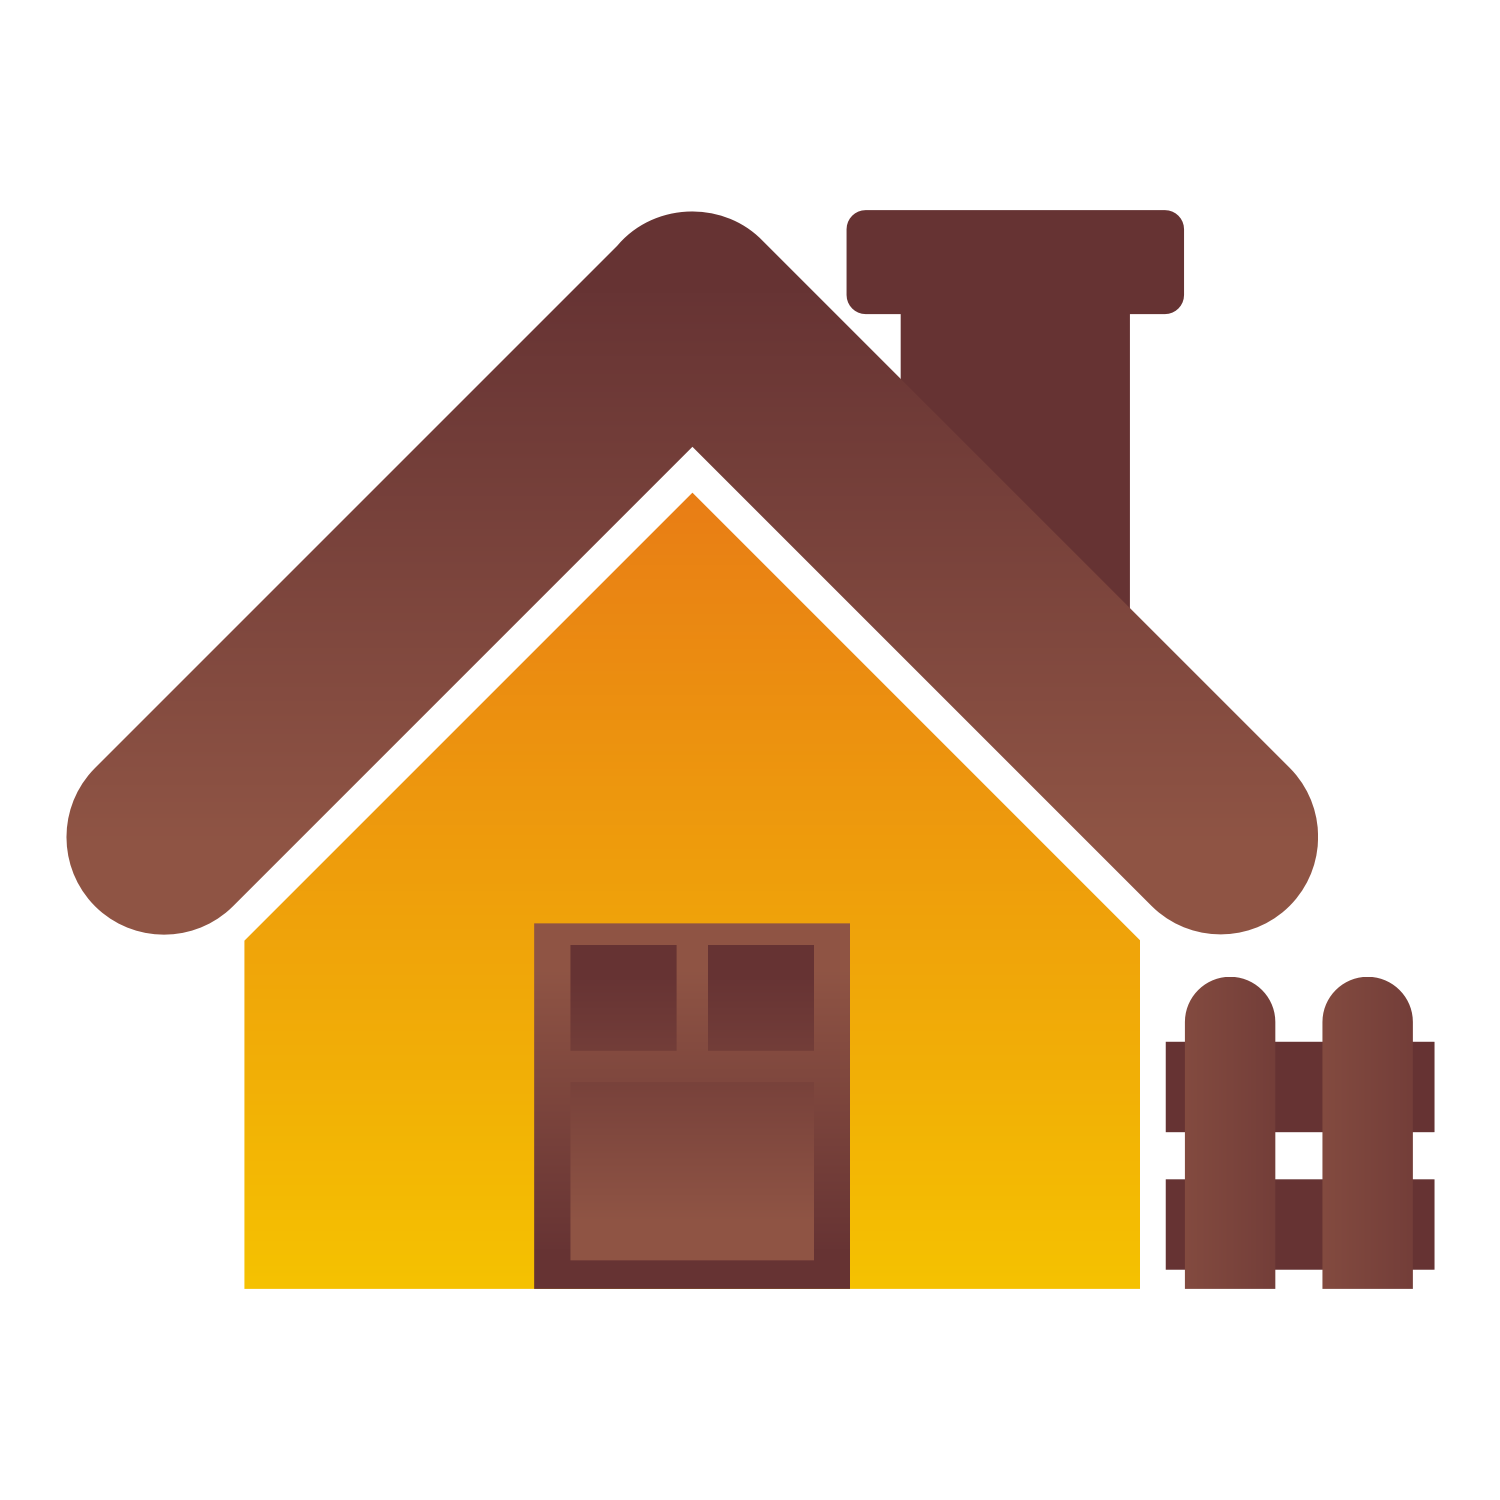 Cute House Icon Png image #32289